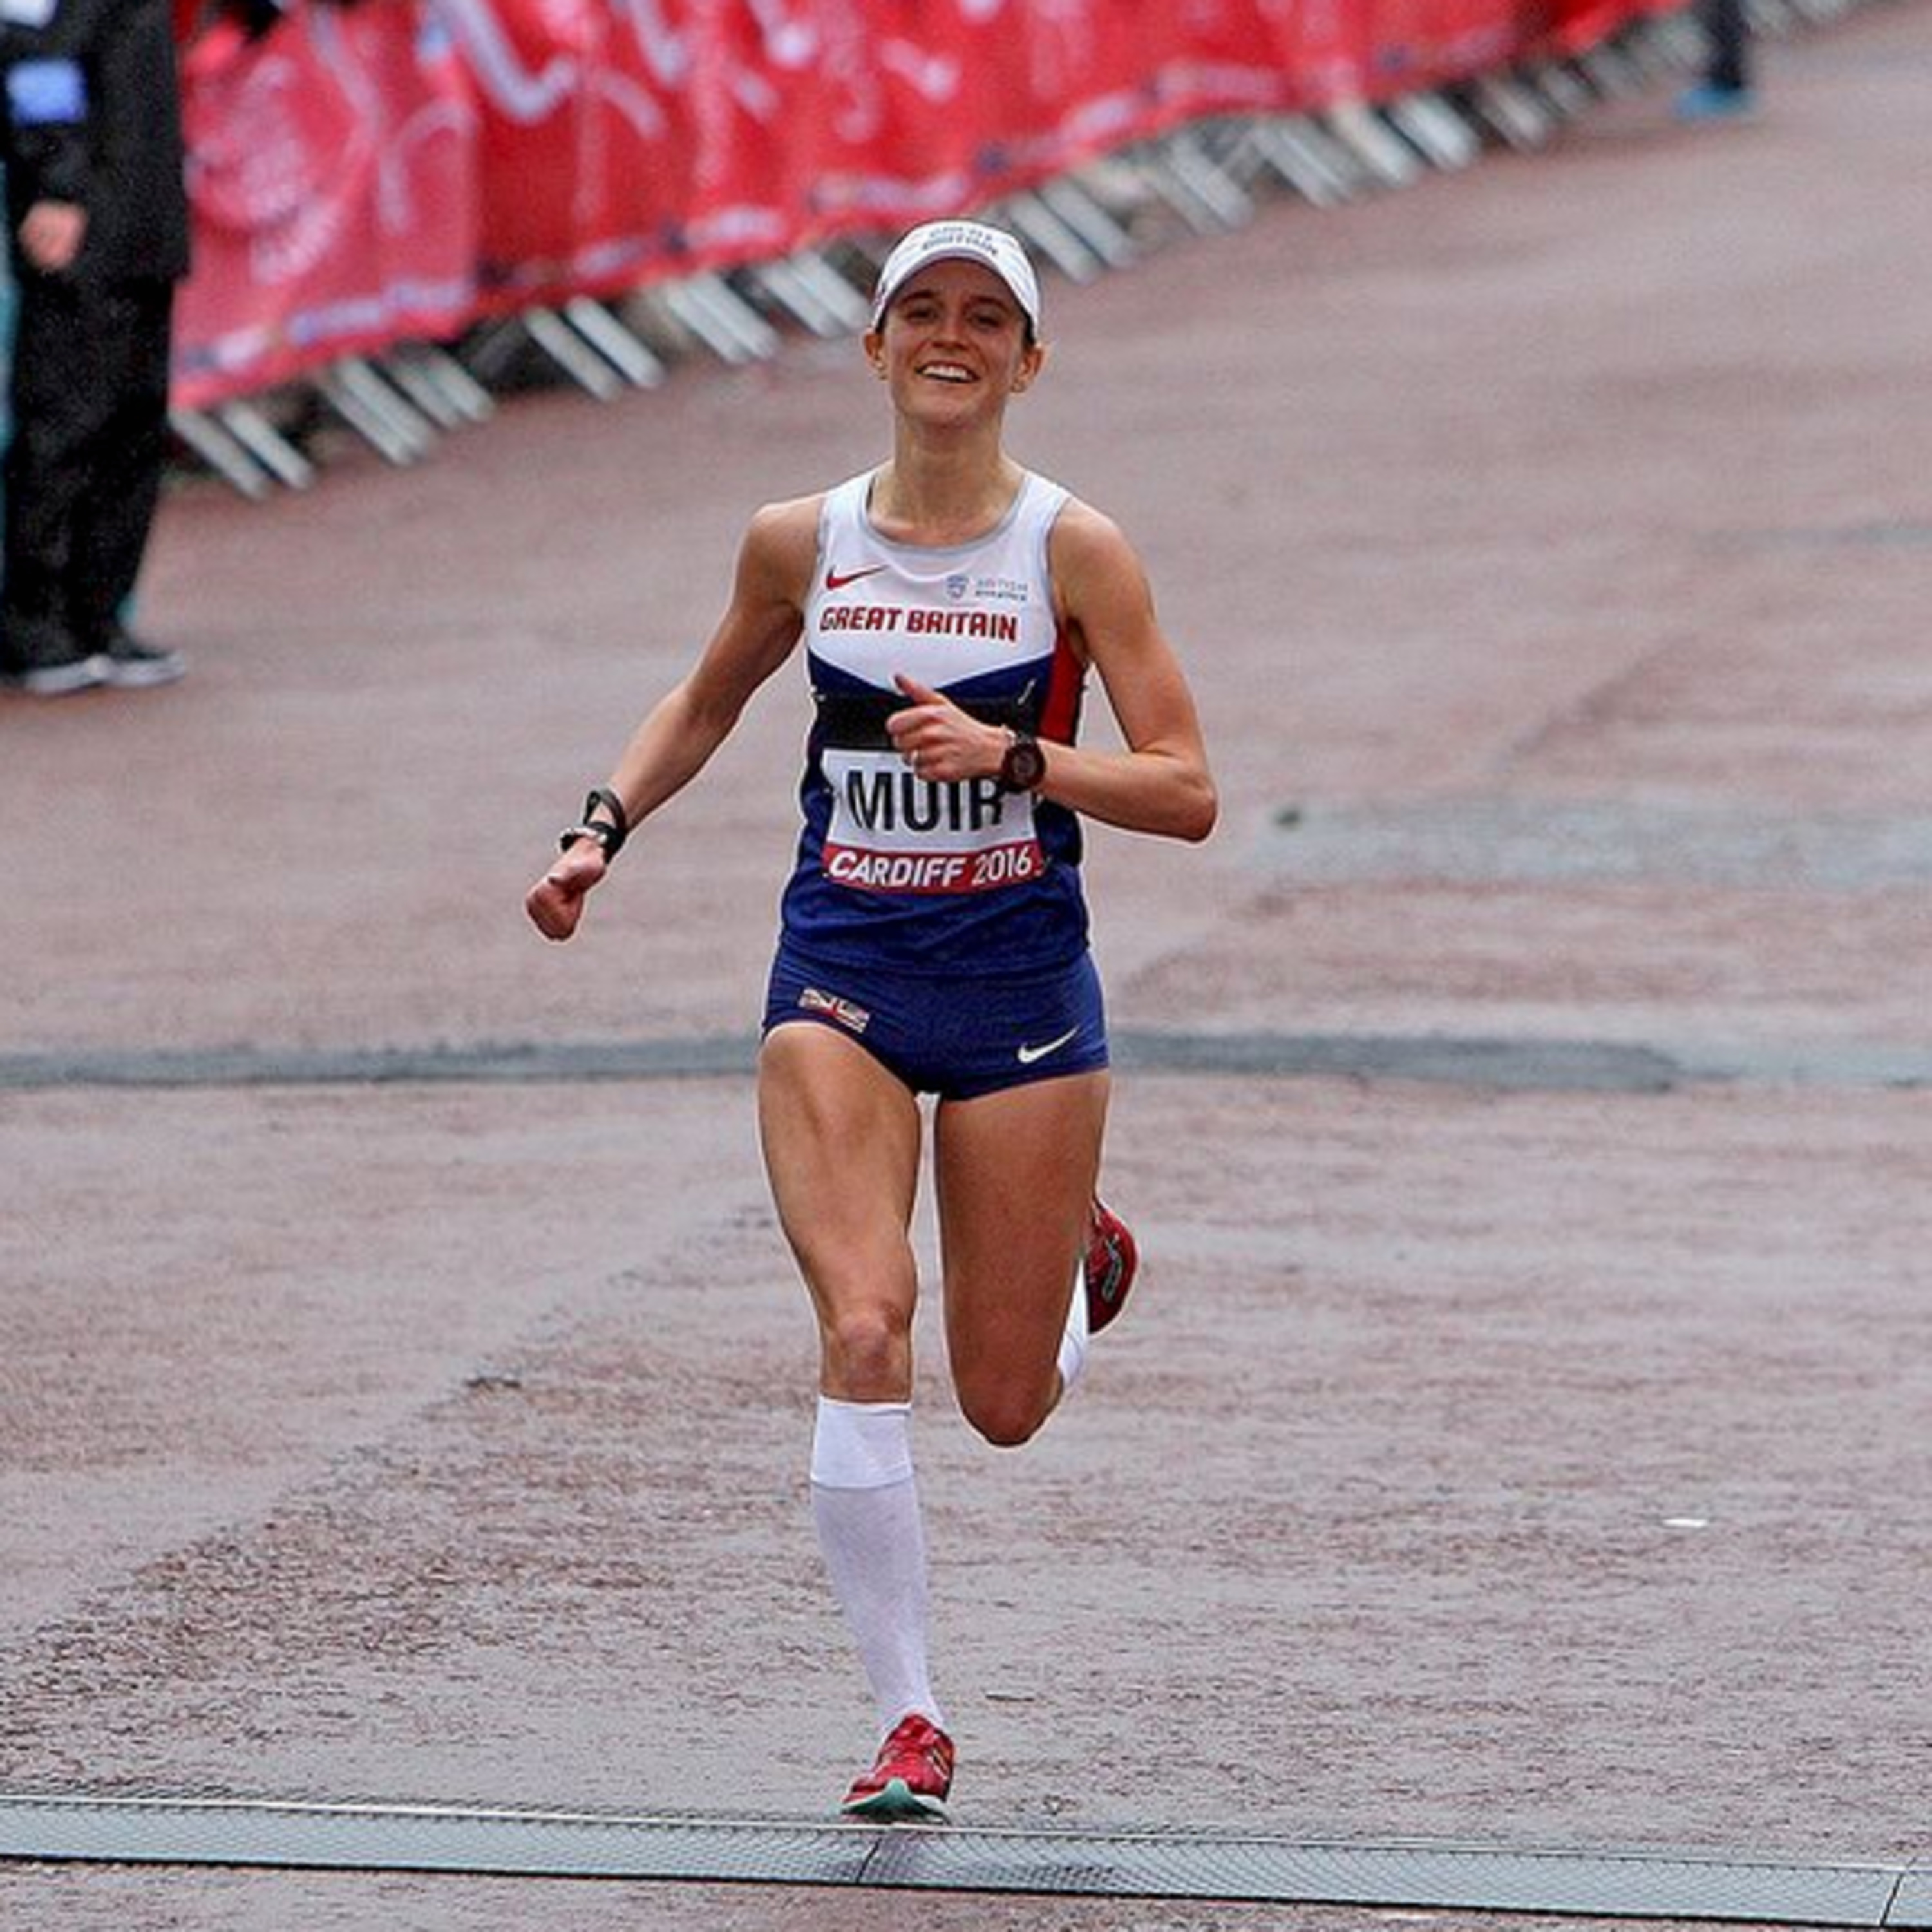 123. Tina Muir: From Pro Runner to Pro Human